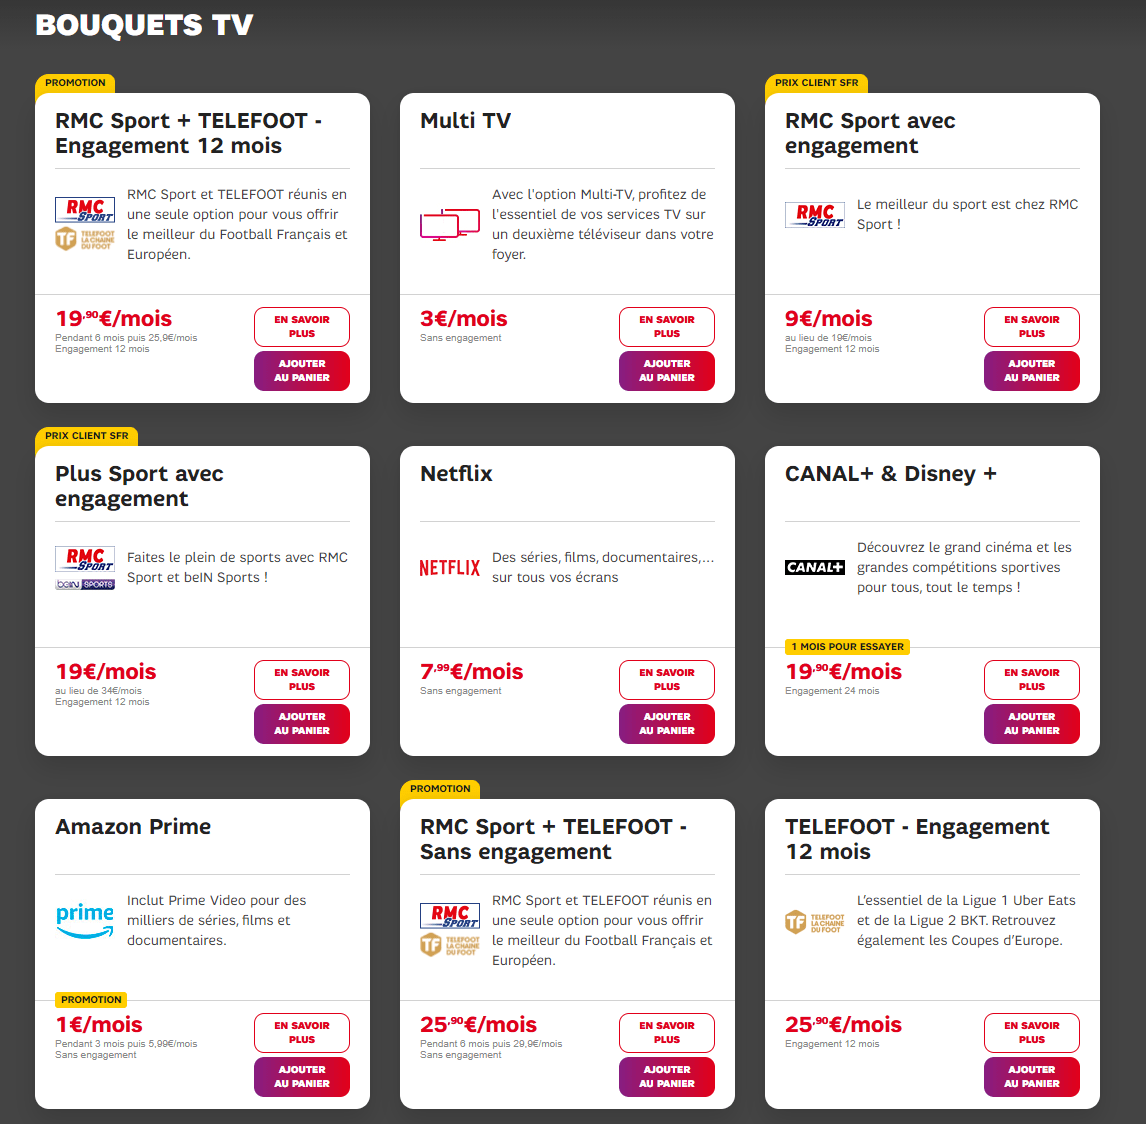 TV options that can be purchased in addition to your SFR fiber subscription.